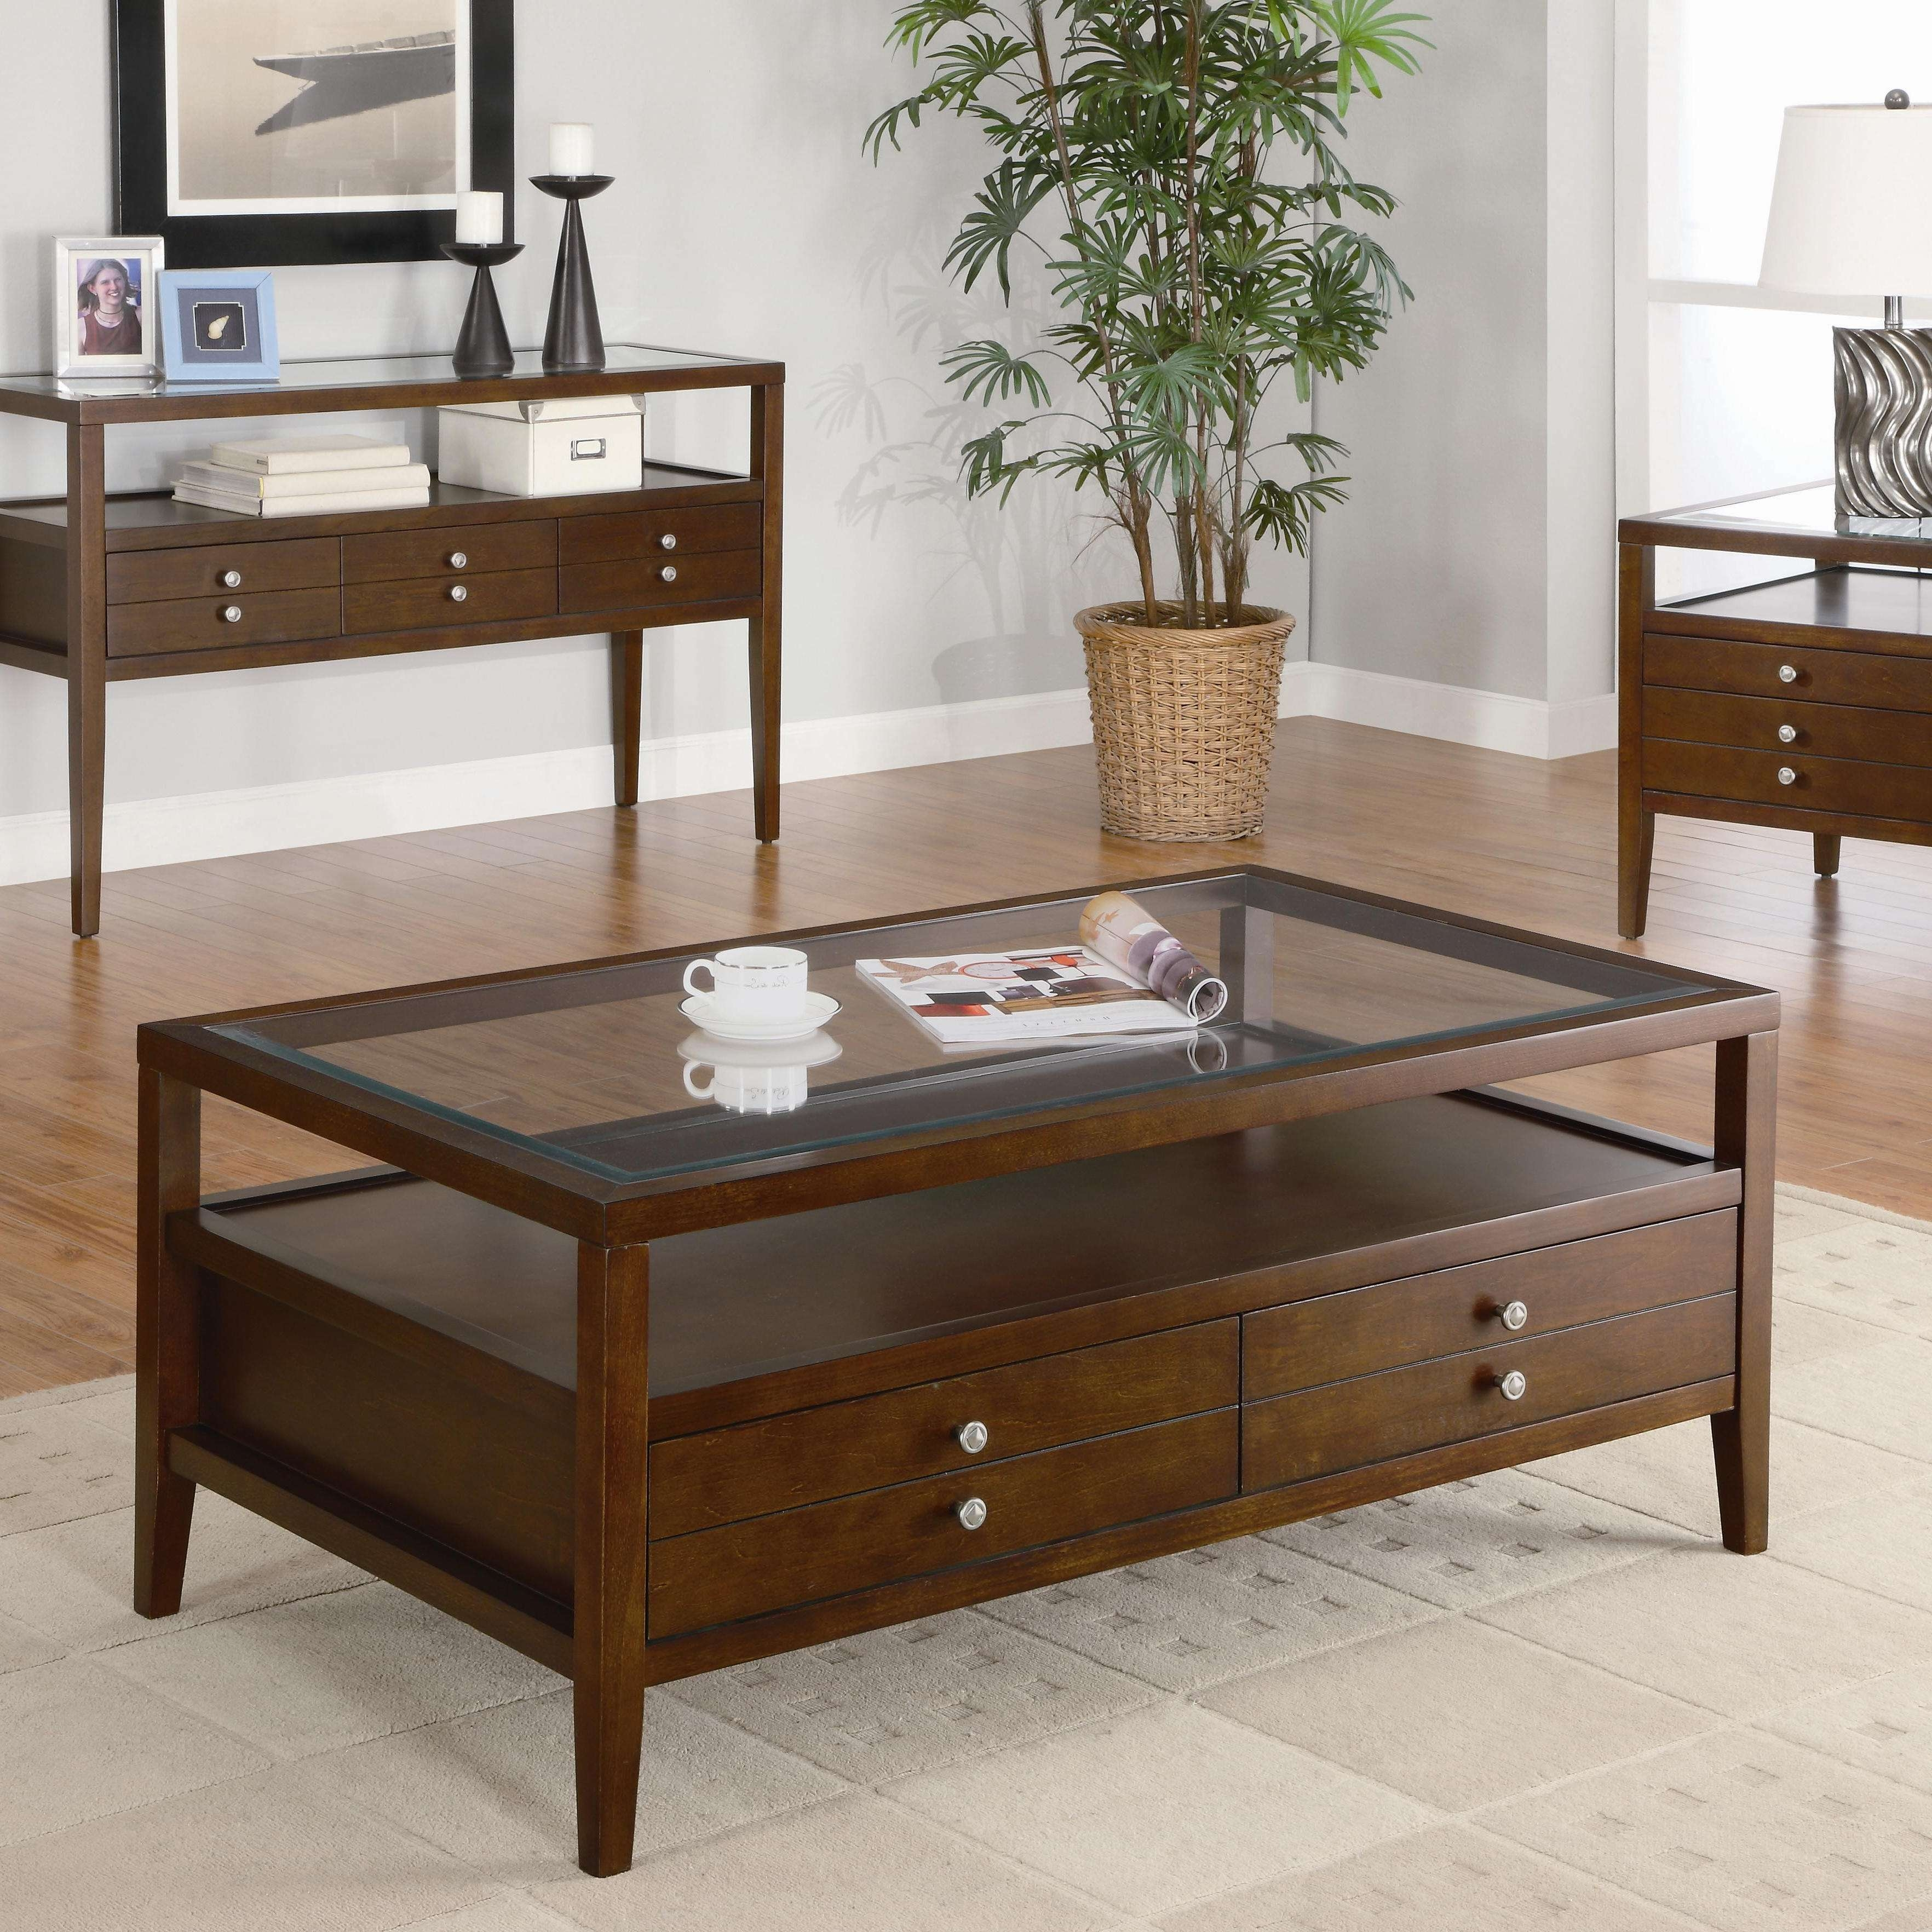 Most Popular Glass Top Storage Coffee Tables For Interior : Contemporary Designer Custom Coffee Table With Storage (View 7 of 20)